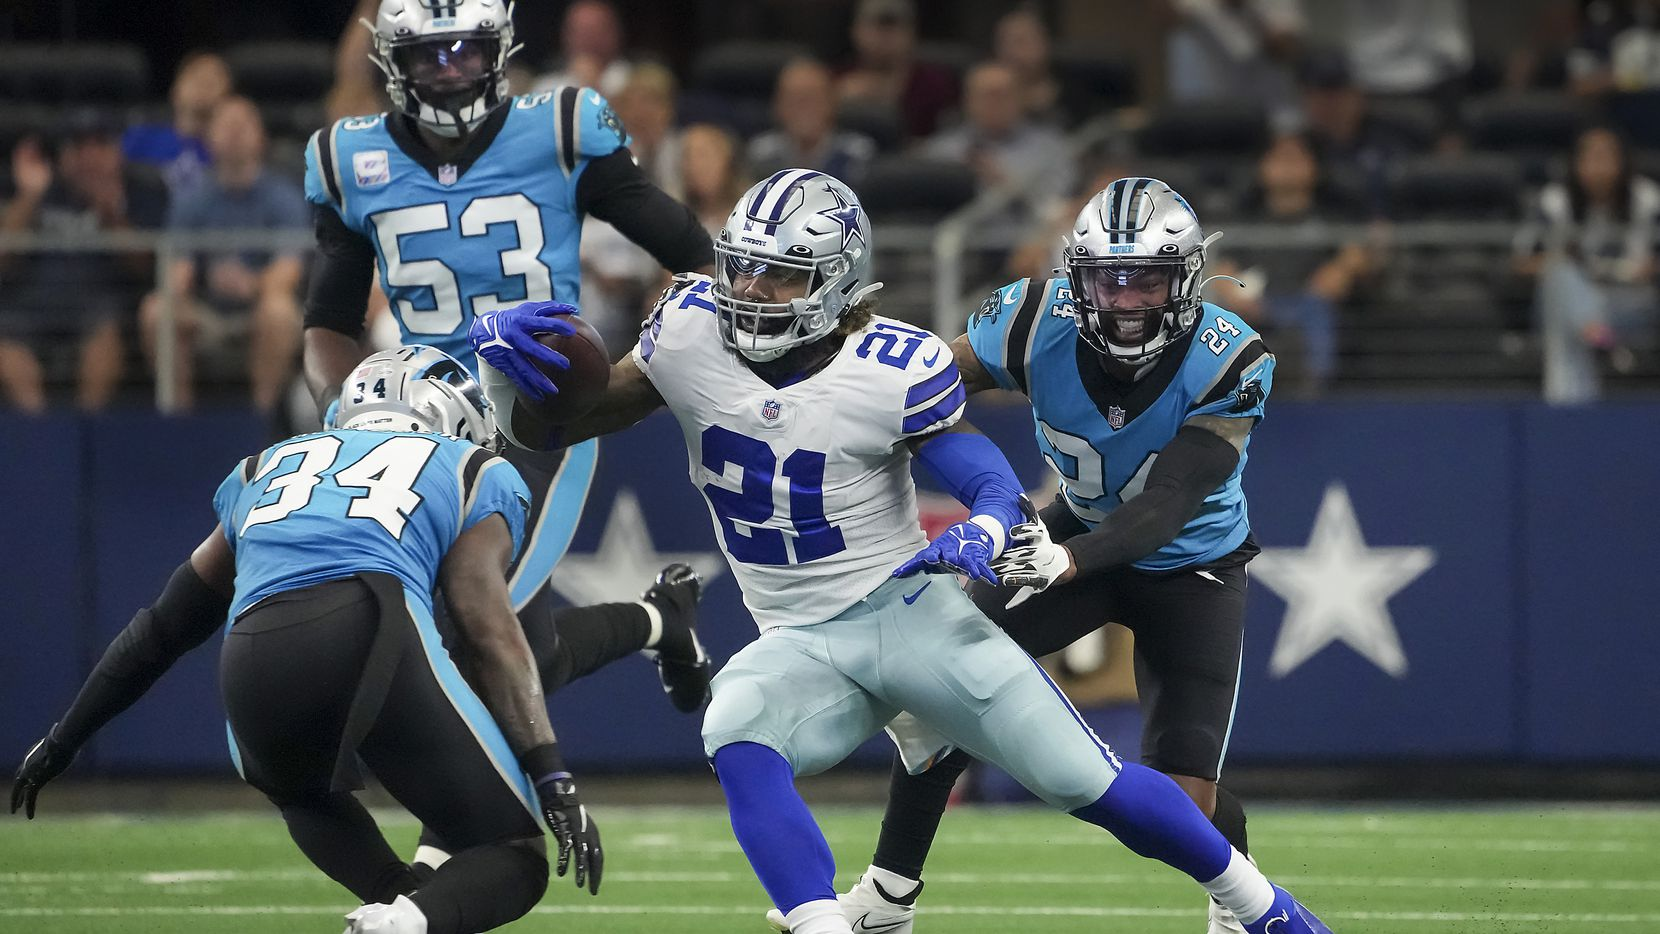 Dallas Cowboys running back Ezekiel Elliott (21) finds a seem between Carolina Panthers defensive back Sean Chandler (34), cornerback A.J. Bouye (24) and defensive end Brian Burns (53) to pick up a first down during the first half of an NFL football game at AT&T Stadium on Sunday, Oct. 3, 2021, in Arlington.